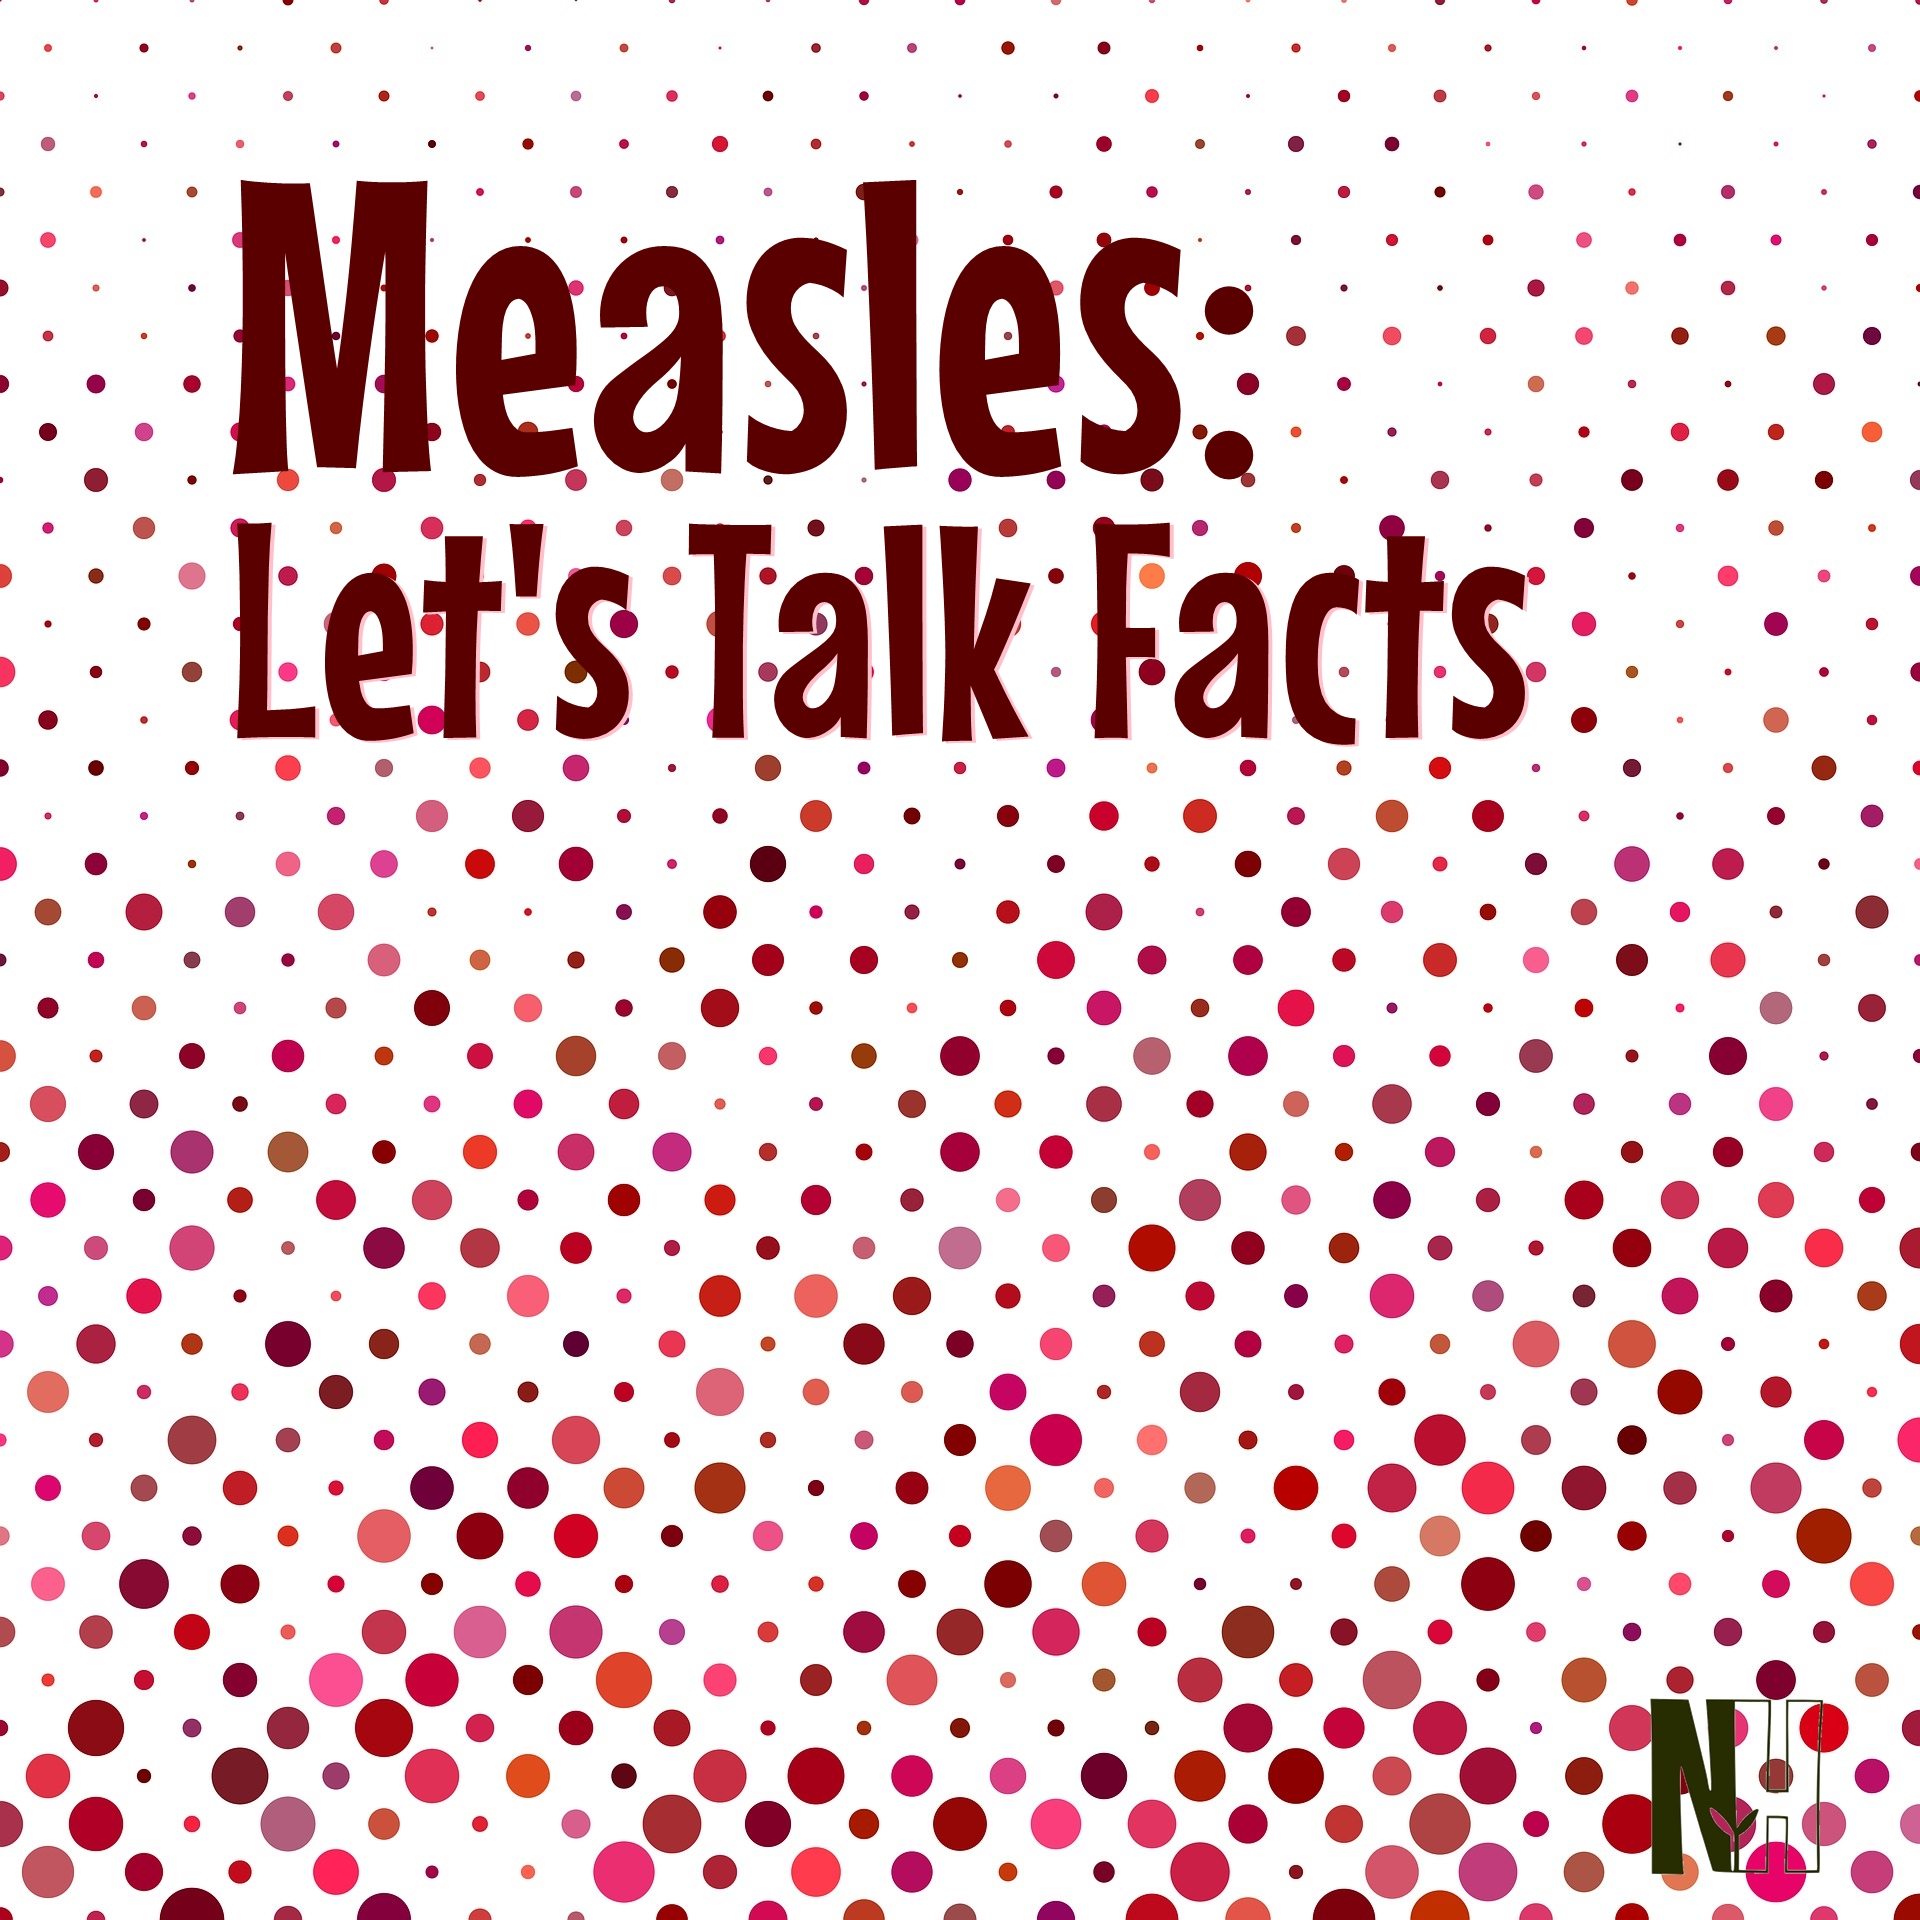 Measles: Let's Talk Facts